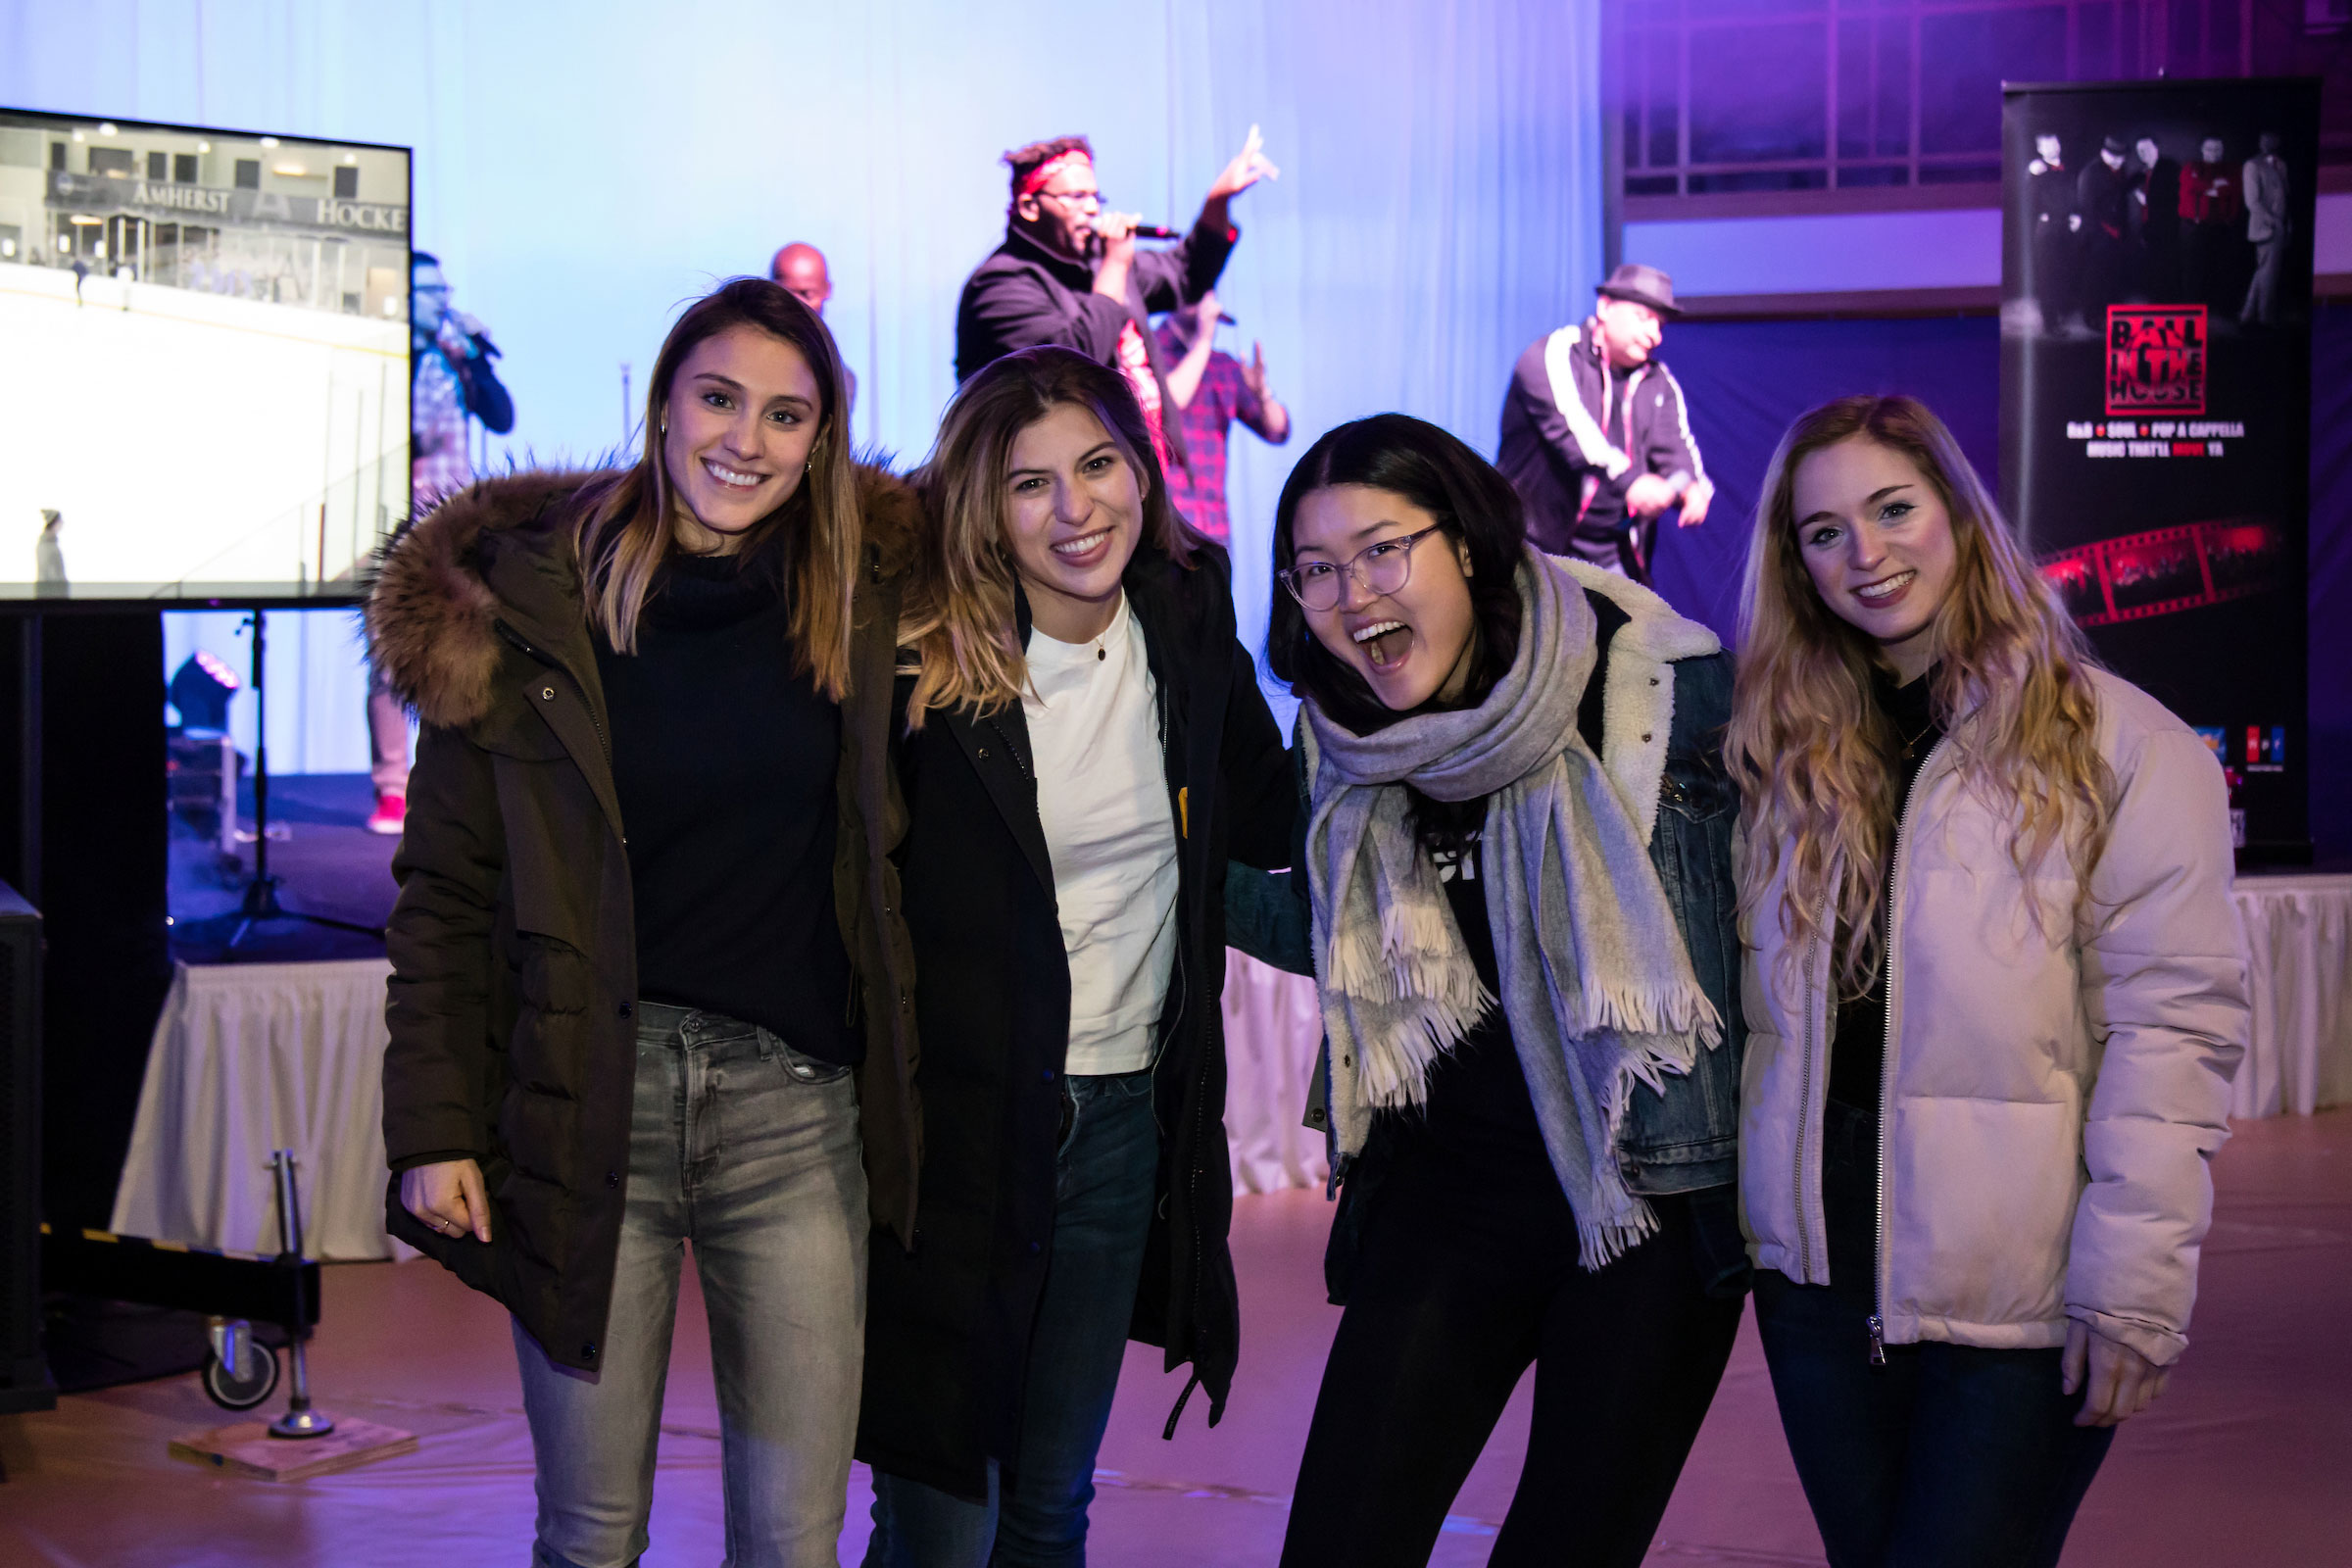 Four smiling women pose in front of the band at Winter Fest